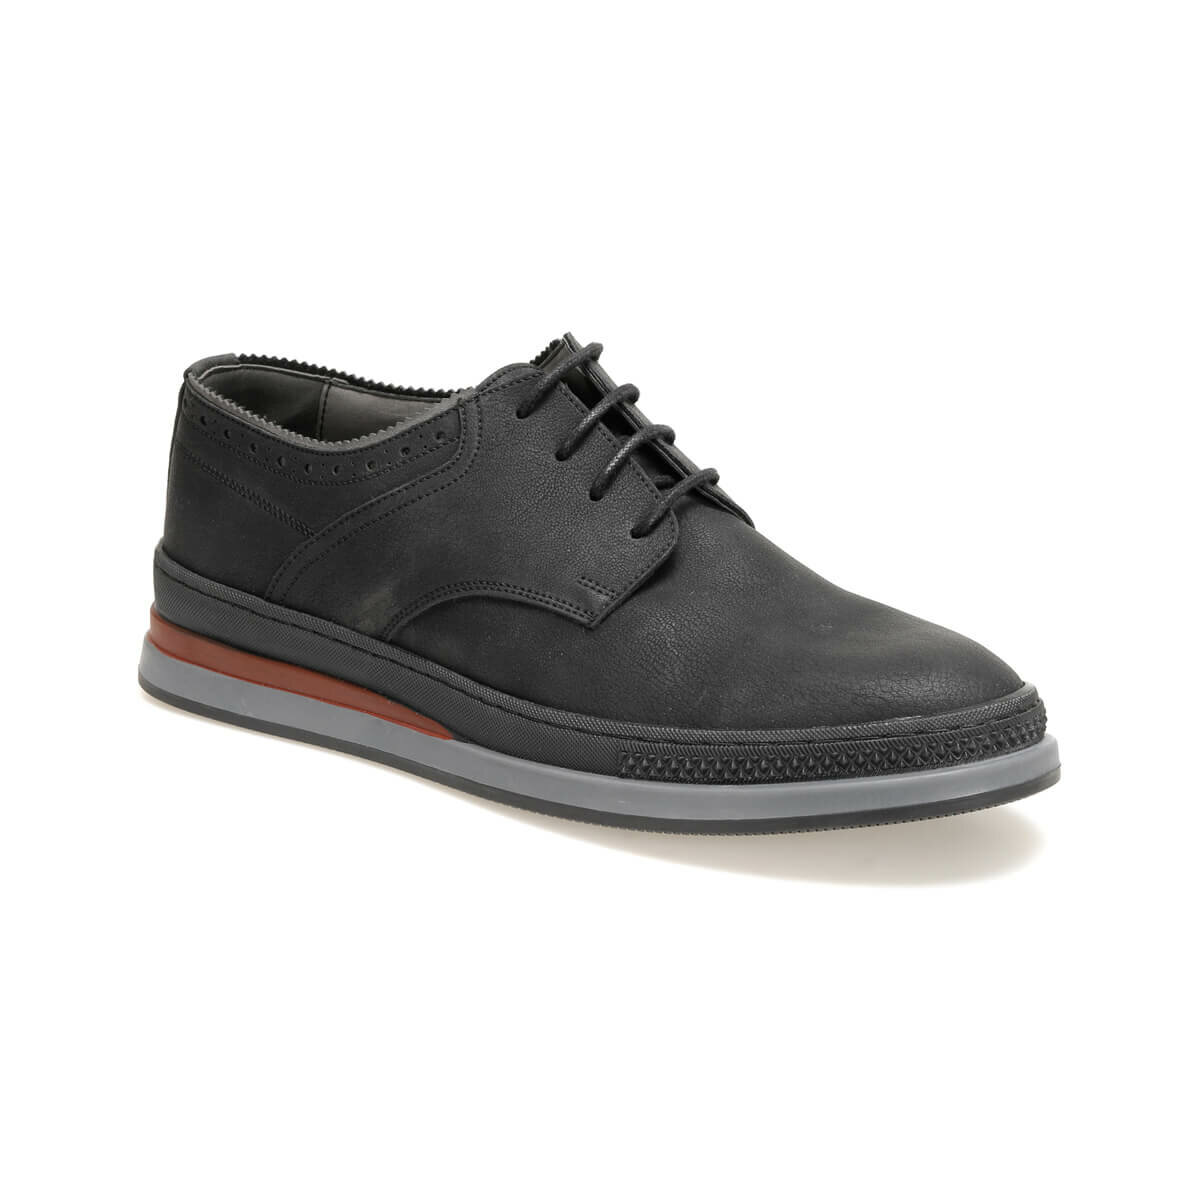 FLO 81113-2 Black Men 'S Classic Shoes JJ-Stiller